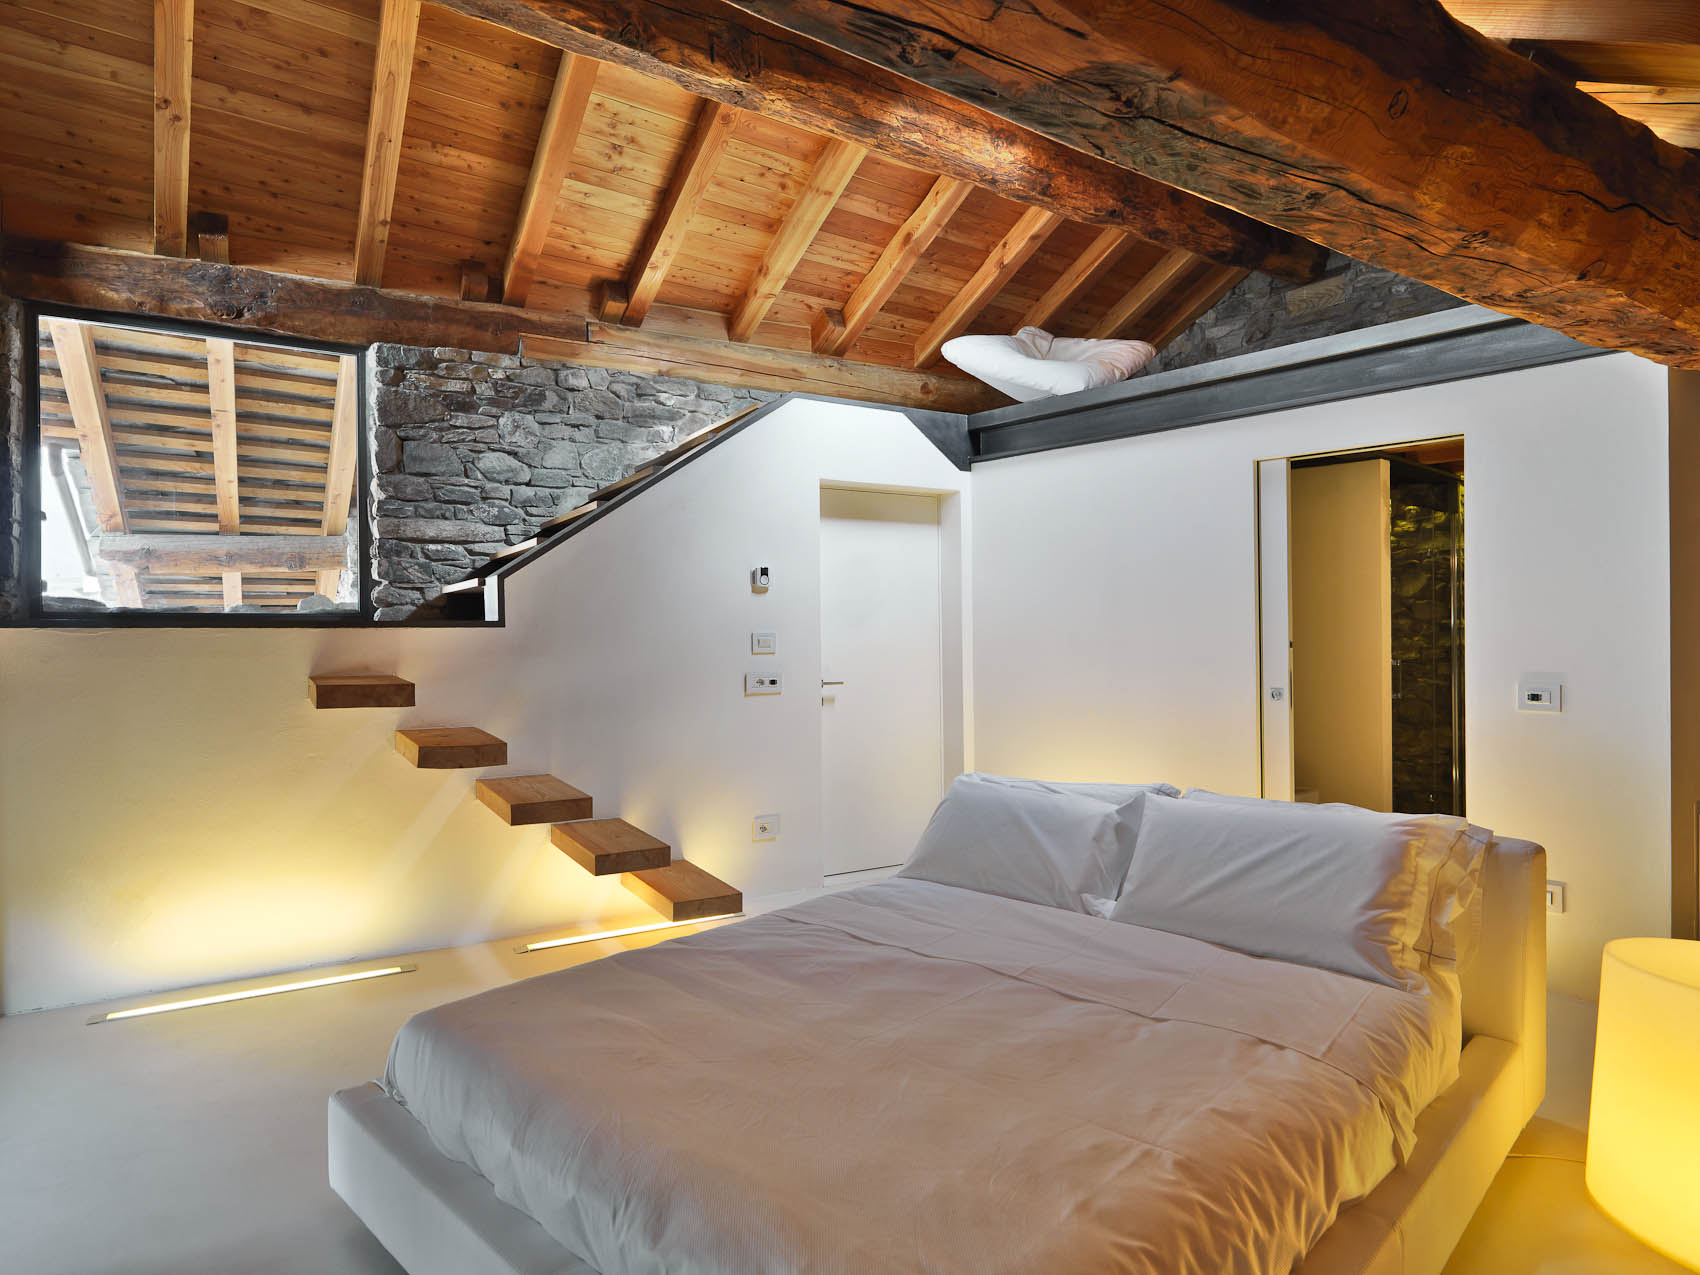 Bed  Breakfast in country house charm and design Aosta Valley